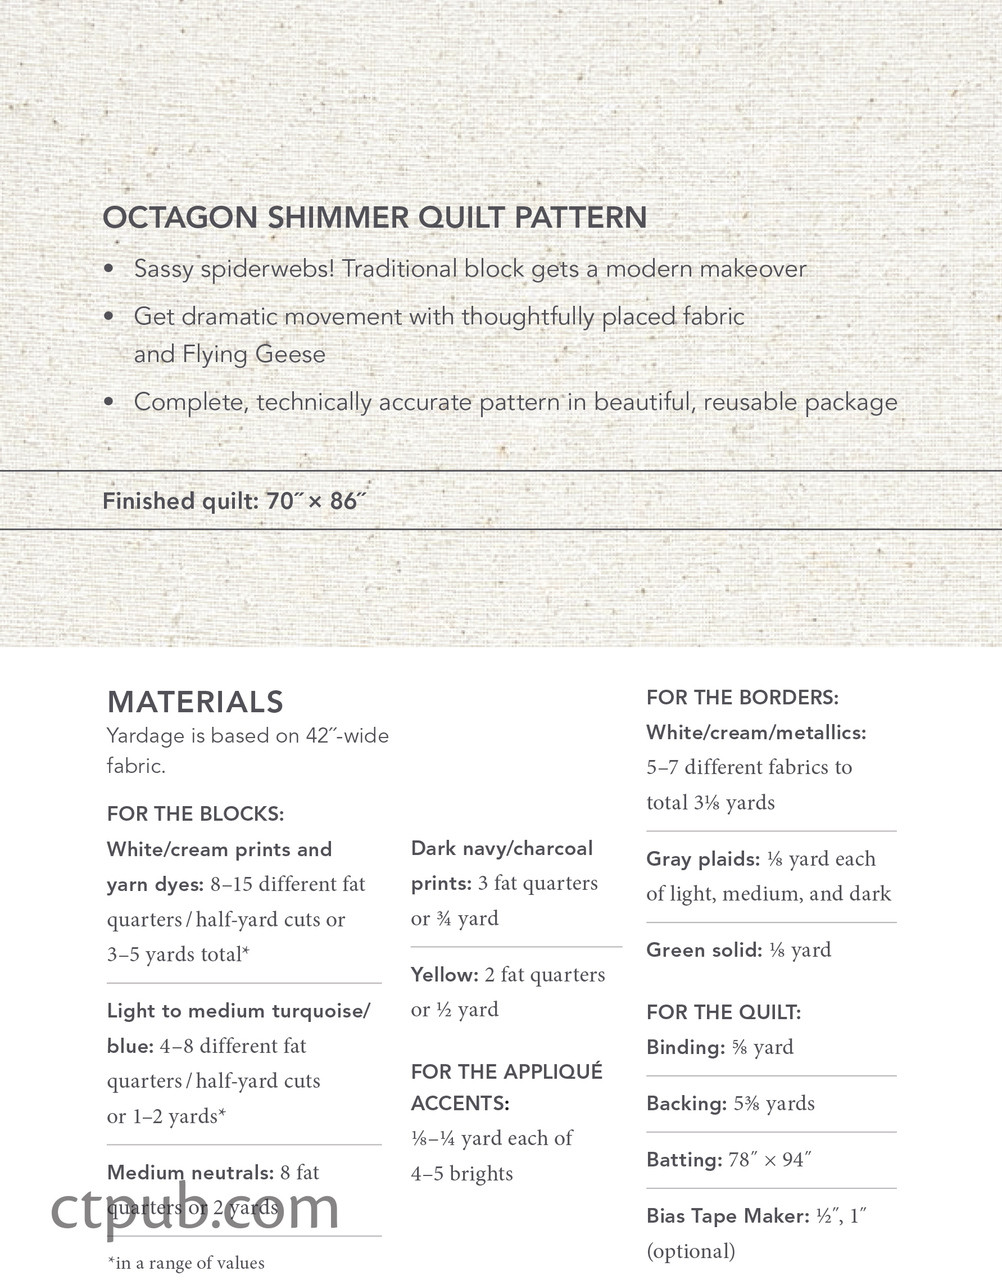 Octagon Shimmer Quilt Pattern Materials